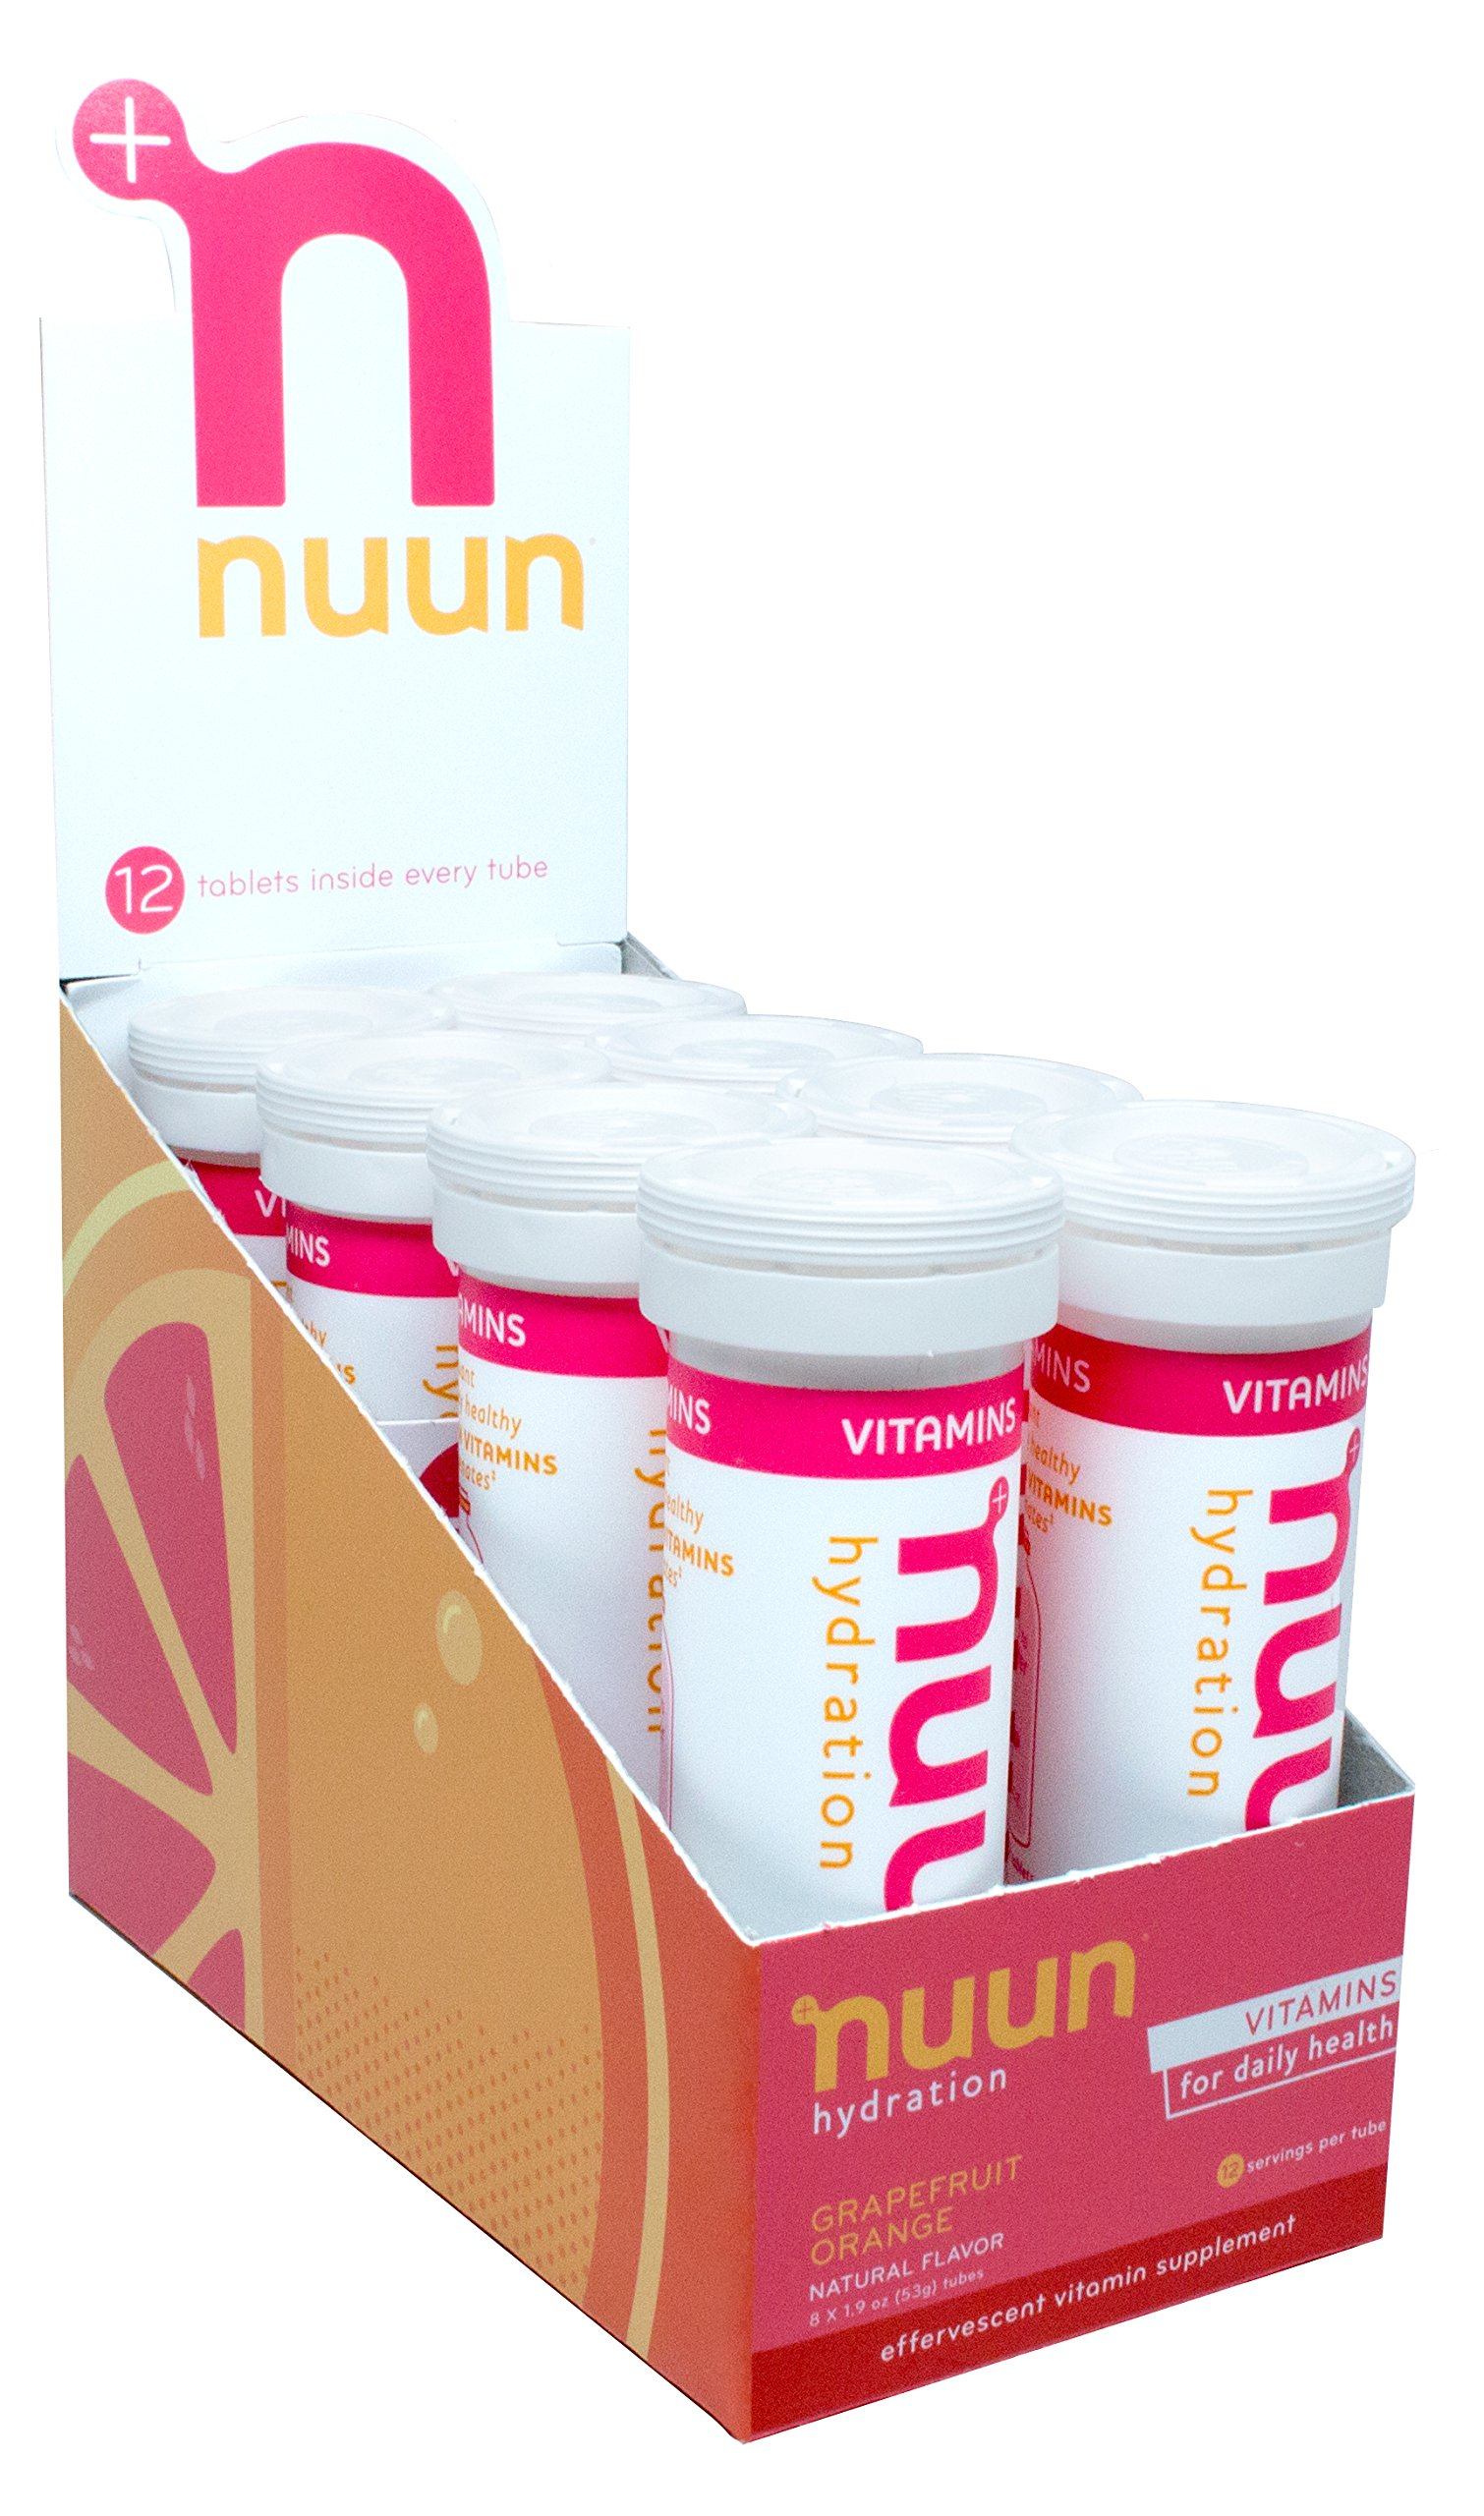 Forum on this topic: Nuun Electrolyte and Hydration Replacement Tablets, nuun-electrolyte-and-hydration-replacement-tablets/